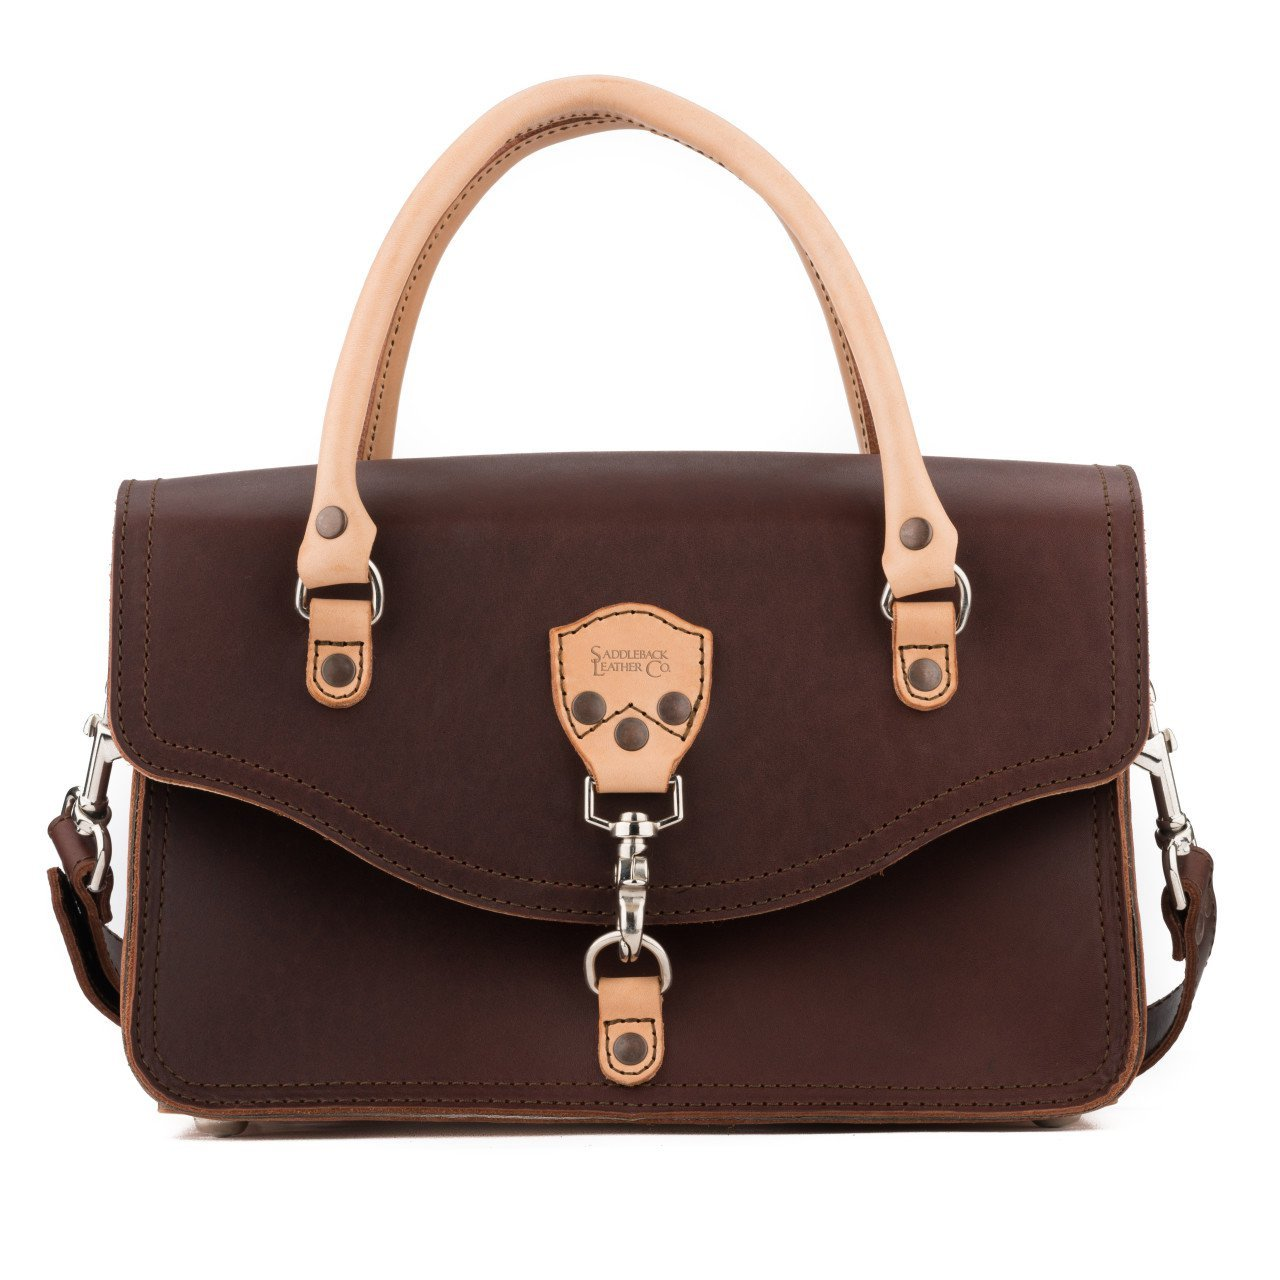 Saddleback Leather Satchel Purse - A Structured Satchel Bag Ladies Can Take Anywhere - 100 Year Warranty